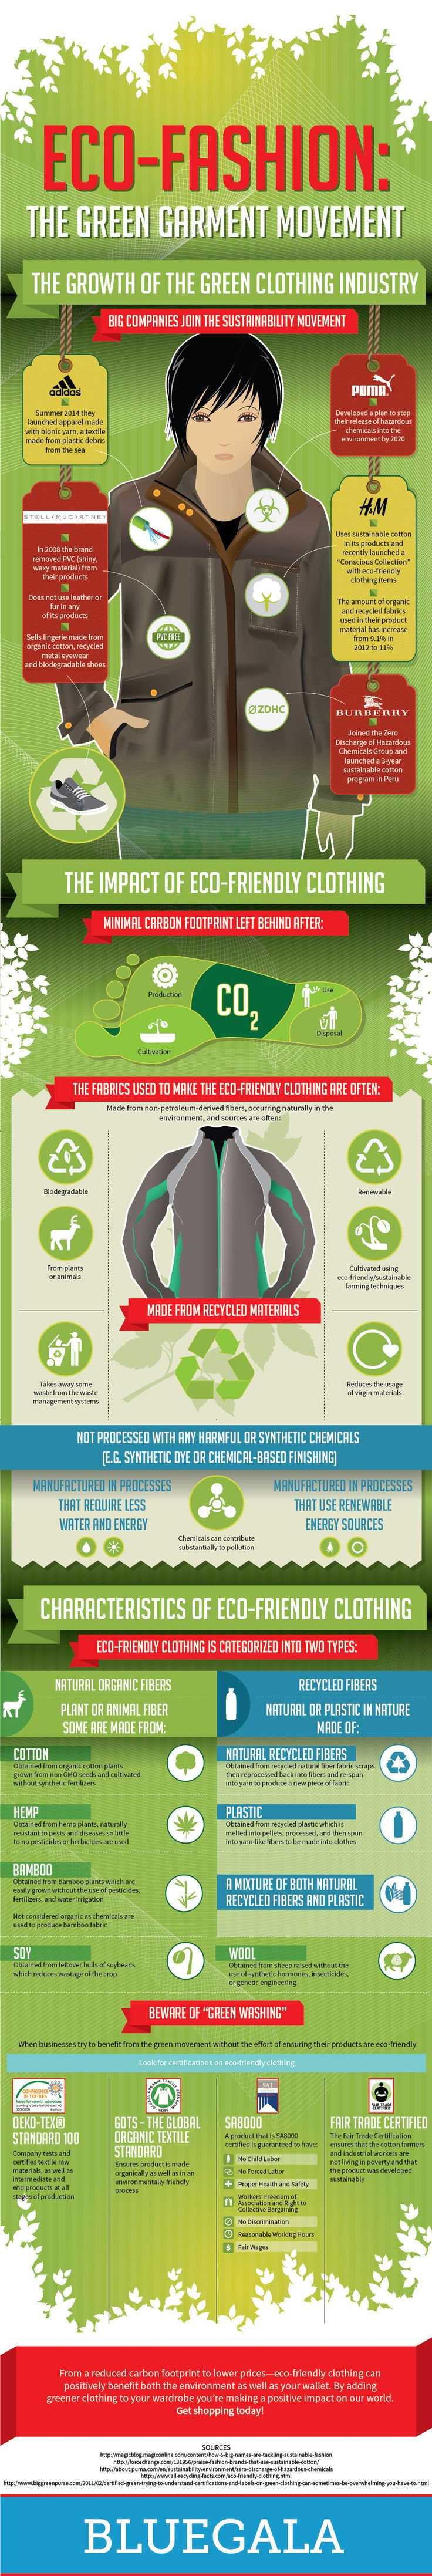 Eco-fashion [Infographic] the green garment movement characteristics impact reasons to shop ethically #ecofashion